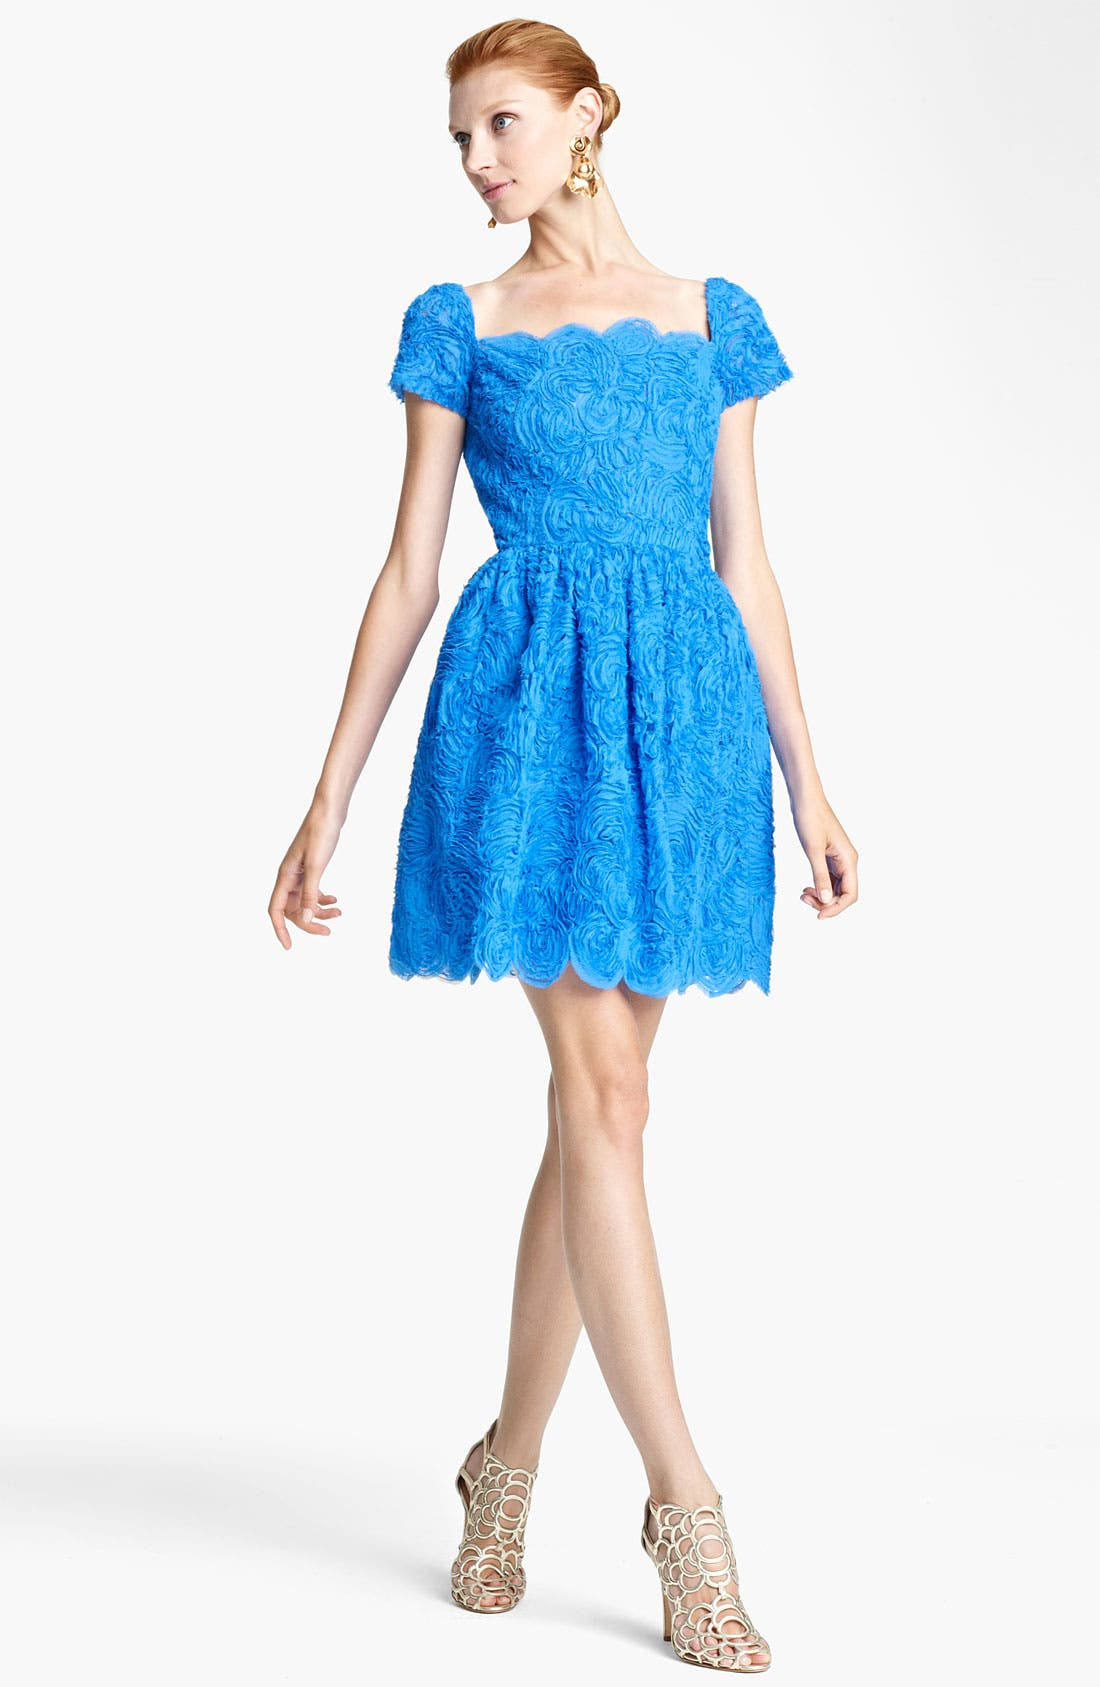 Alternate Image 1 Selected - Oscar de la Renta Embroidered Cocktail Dress